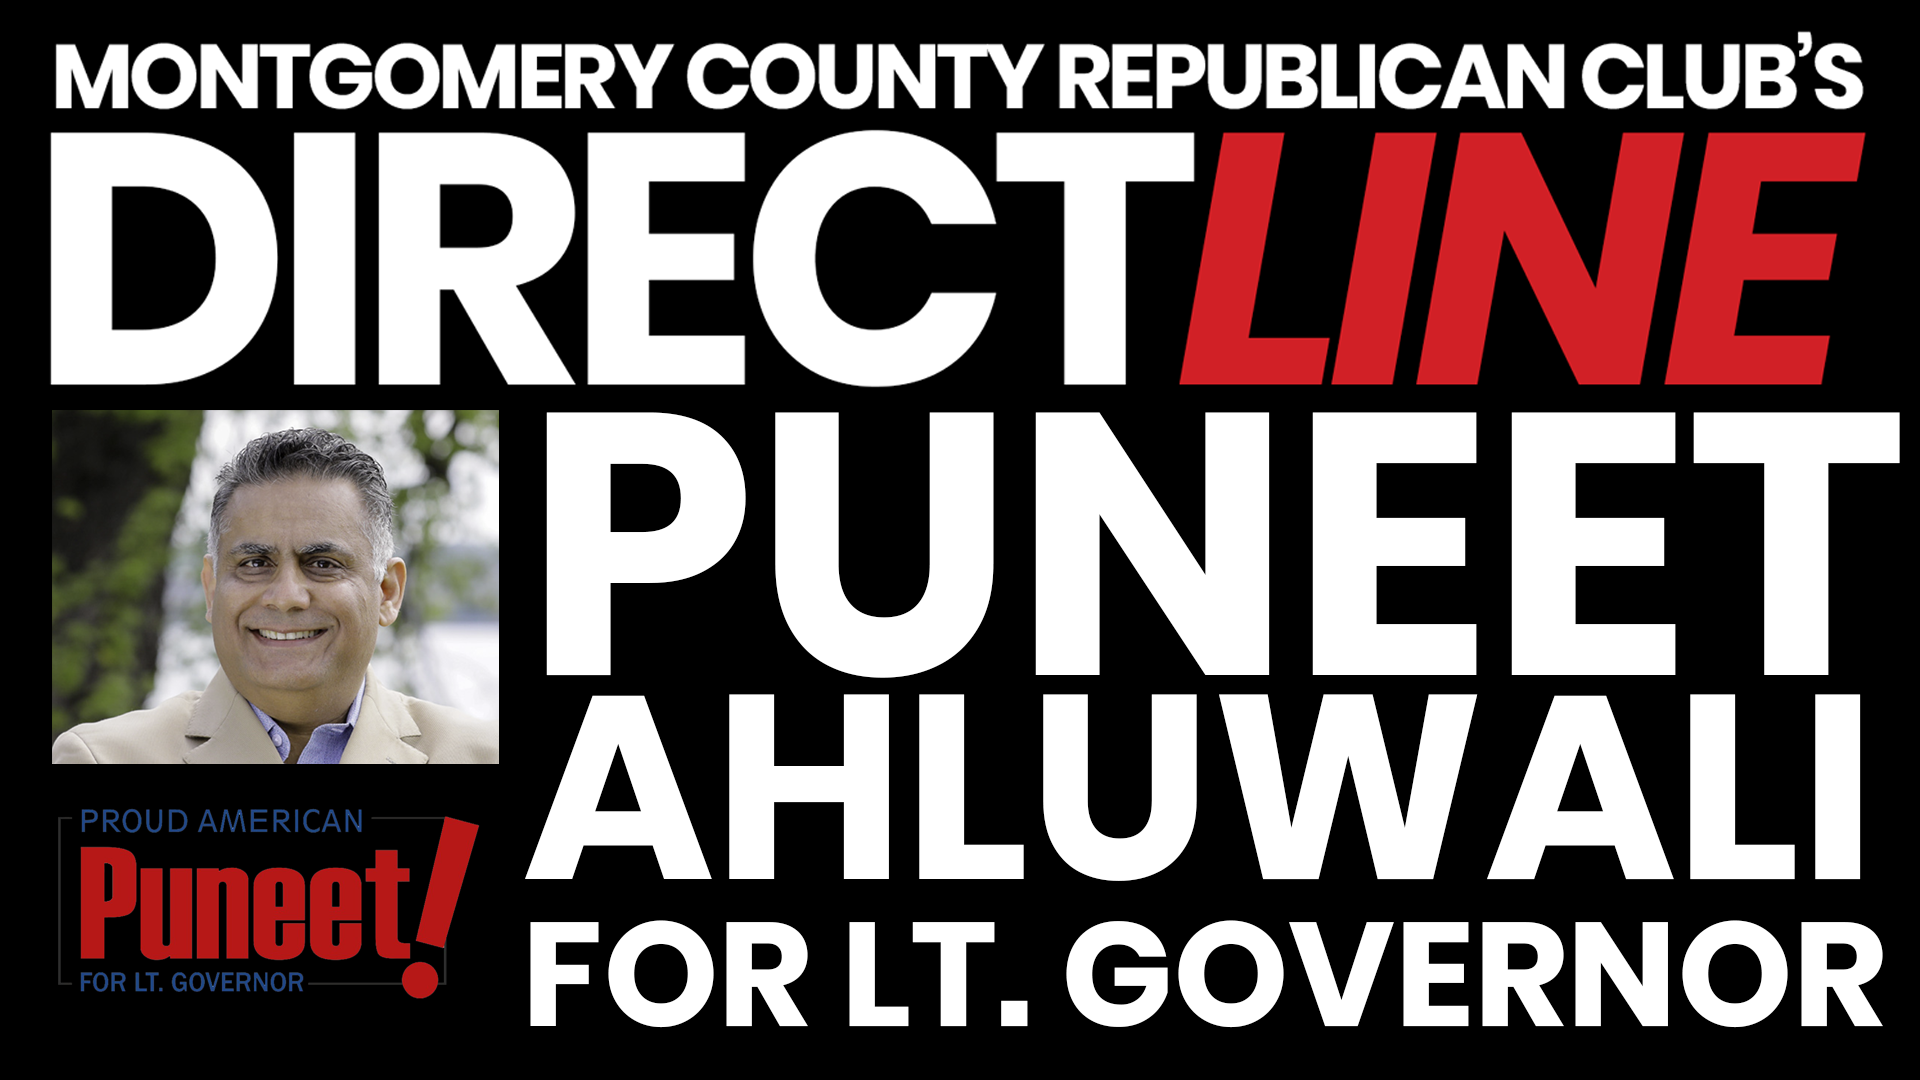 PUNEET FOR VA